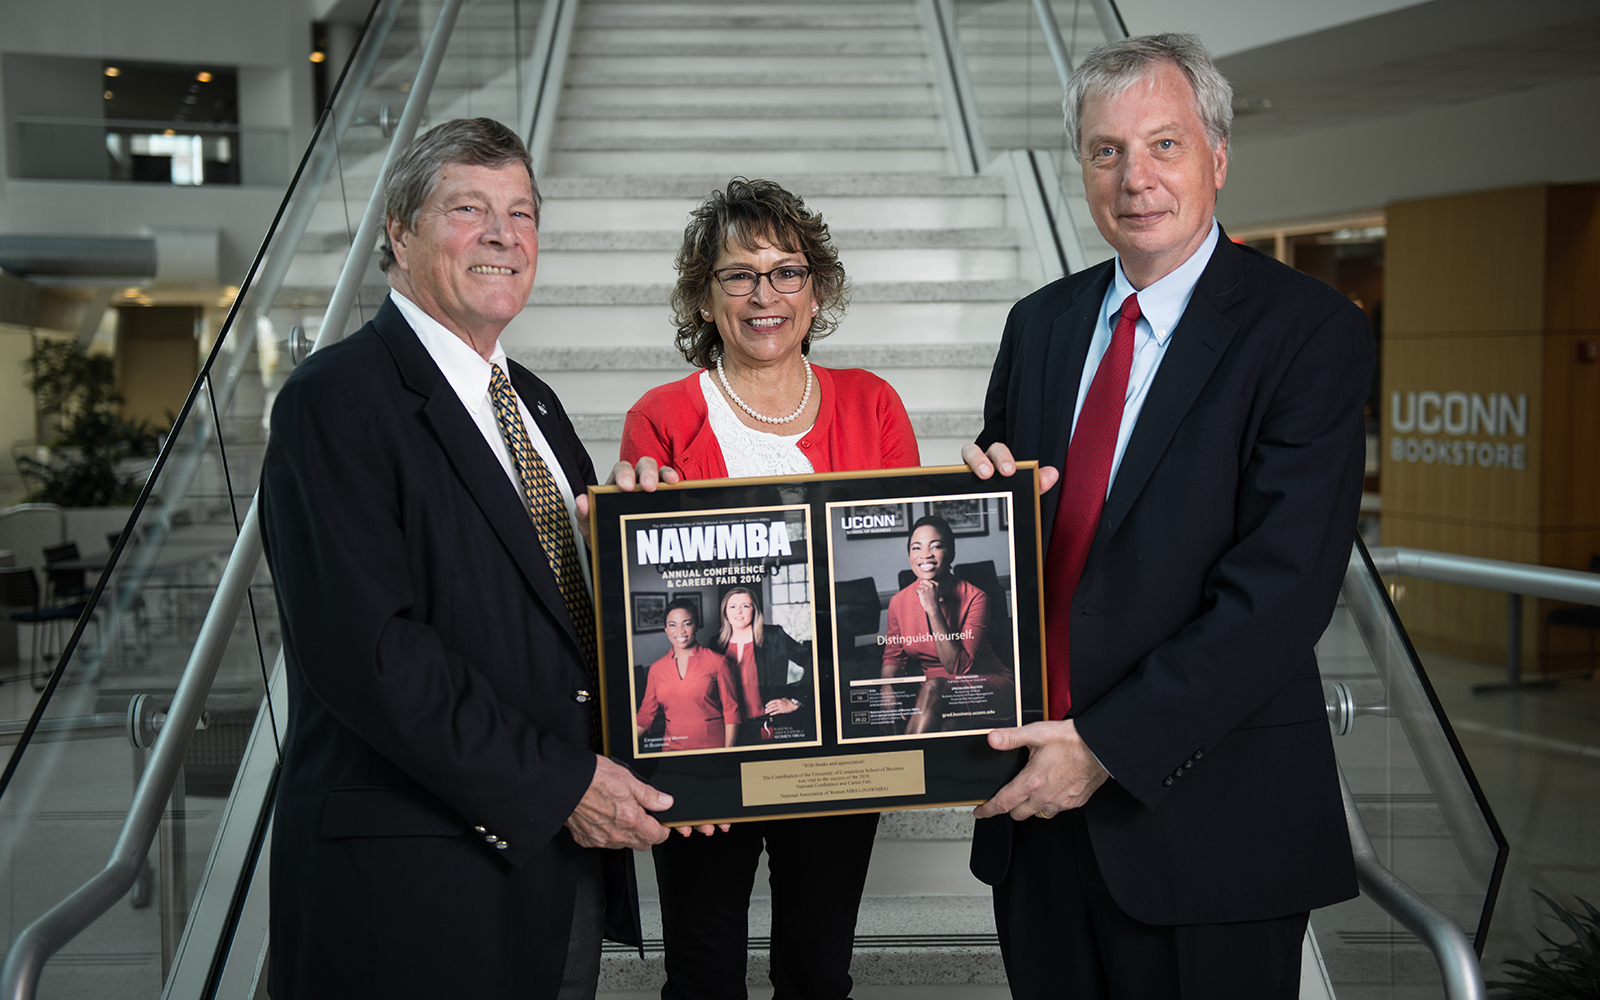 NAWMBA plaque presented to John Elliott, Marlys Rizzi, John Knopf (Nathan Oldham/UConn School of Business)